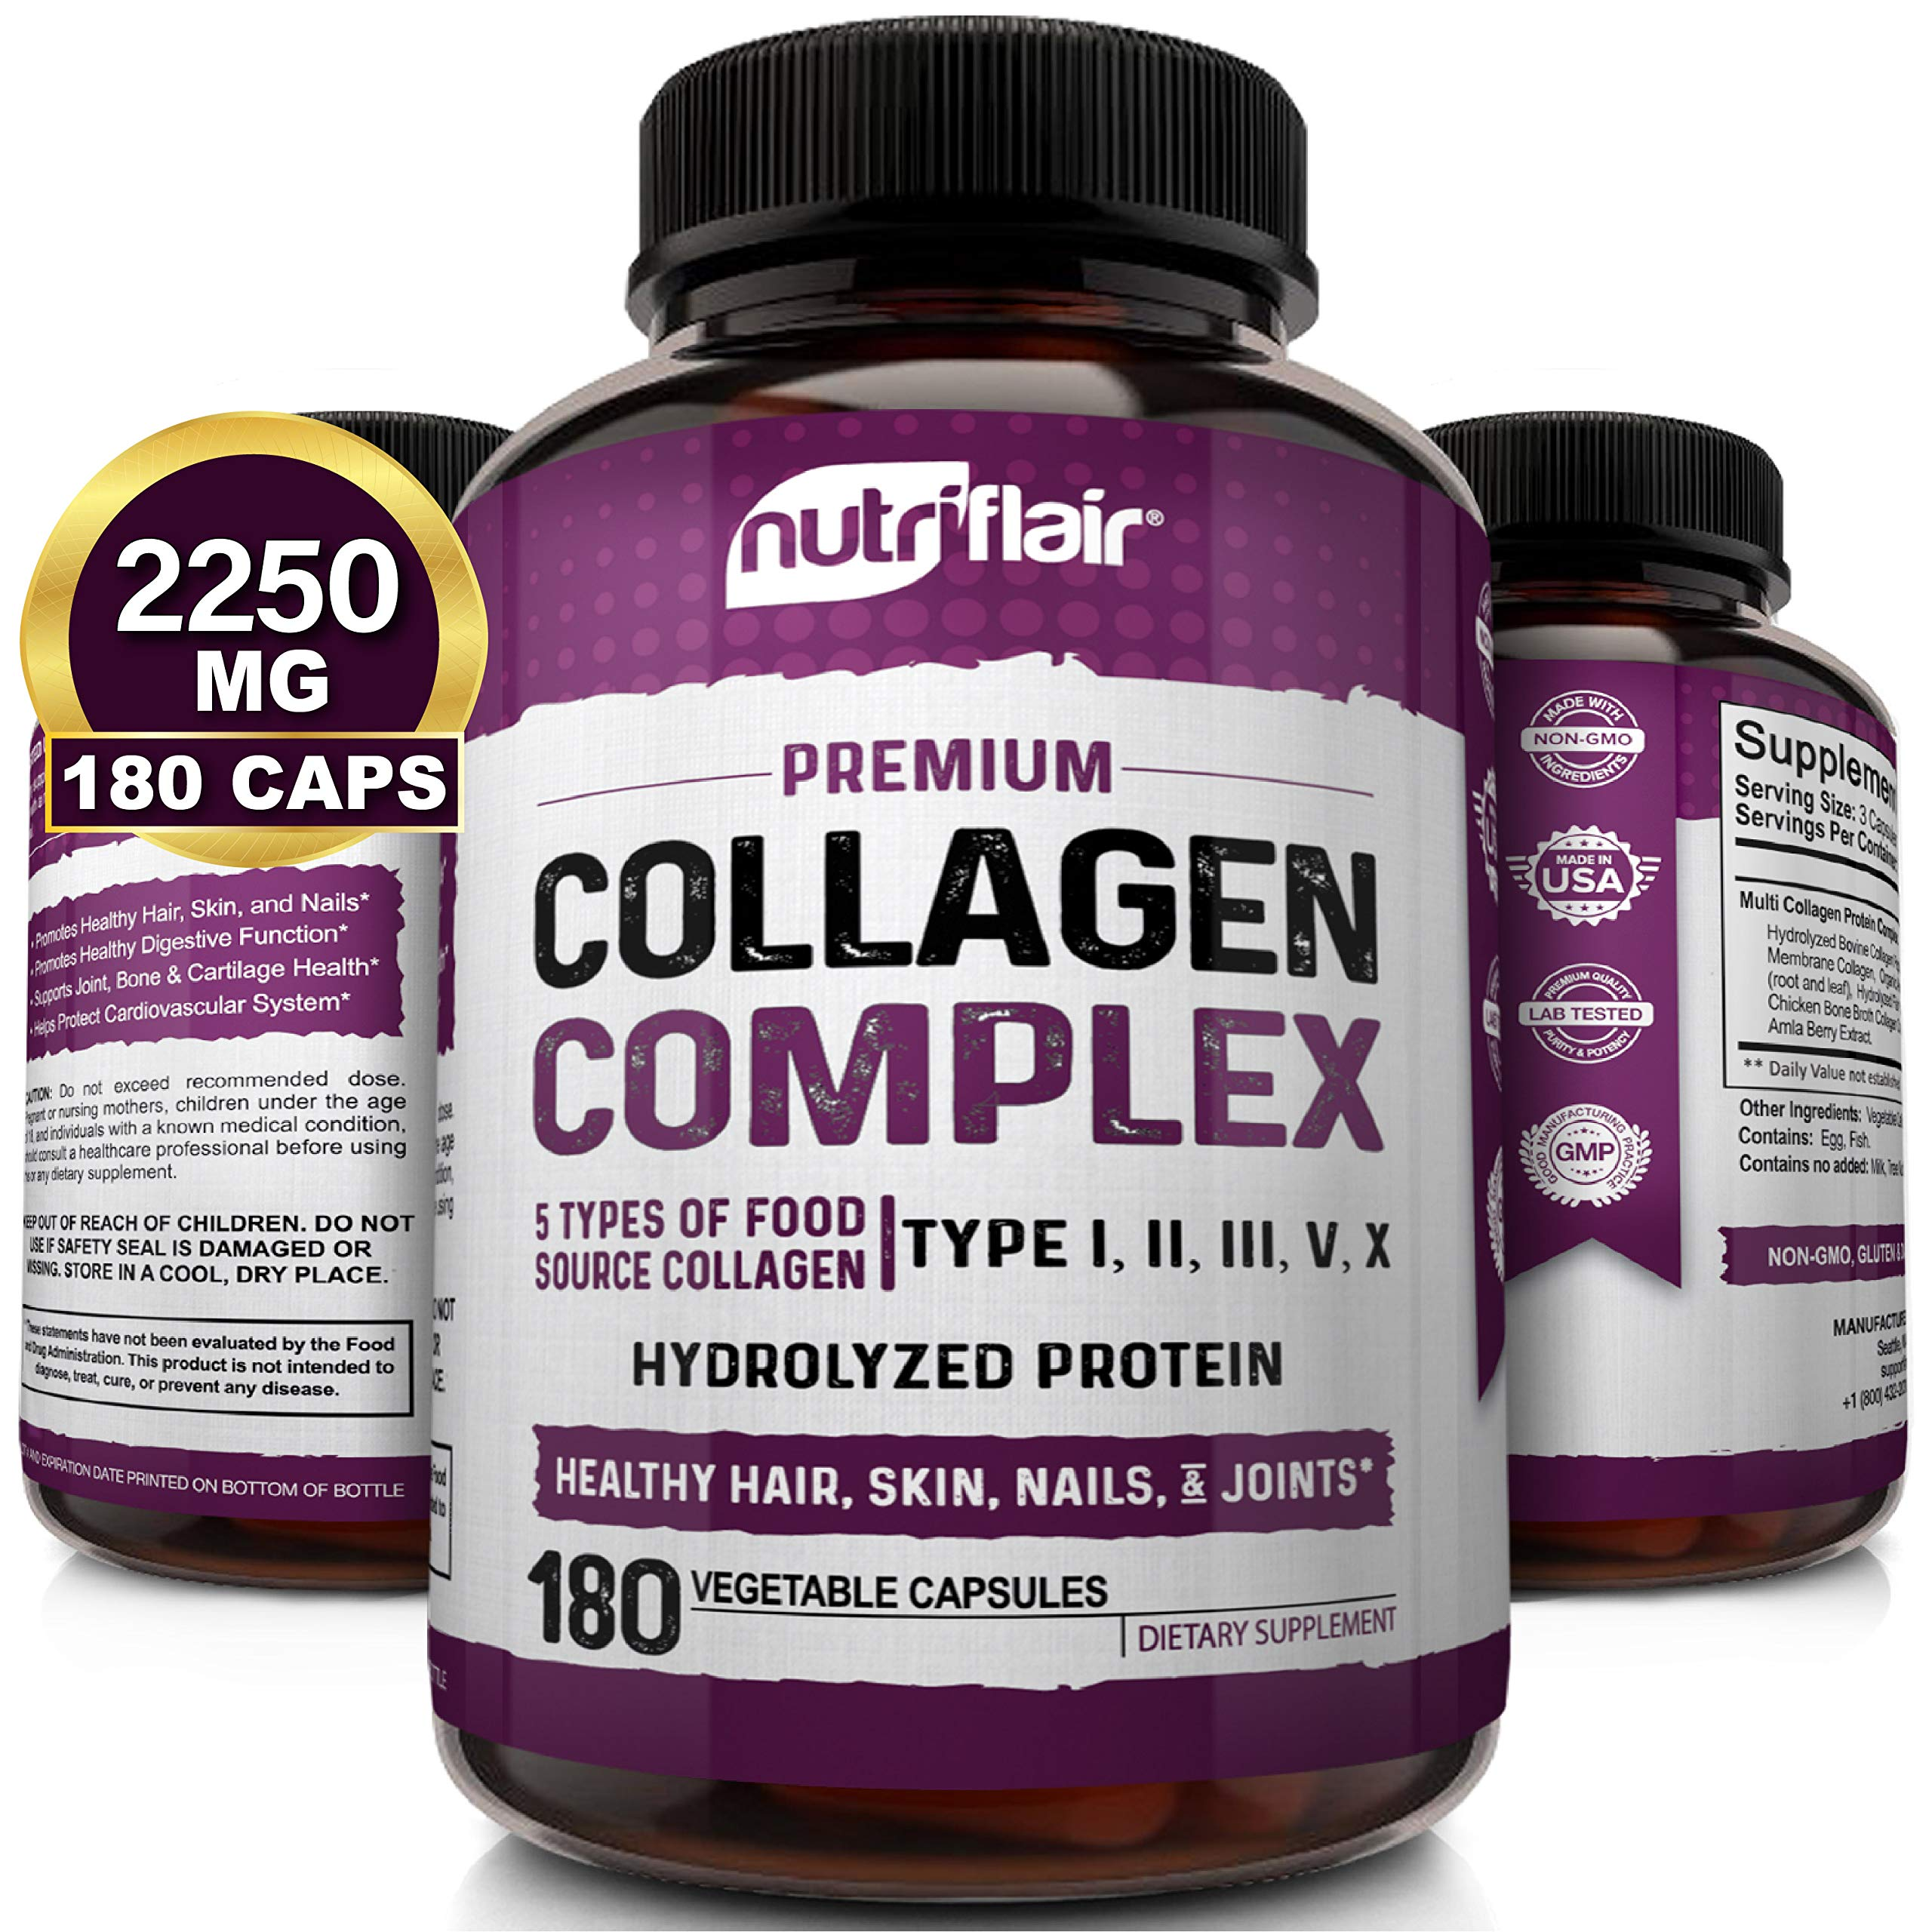 NutriFlair Multi Collagen Peptides Pills 2250MG, 180 Capsules - Type I, II, III, V, X - Premium Collagen Complex - Hydrolyzed Protein Supplement for Anti-Aging, Healthy Joints, Hair, Skin, and Nails